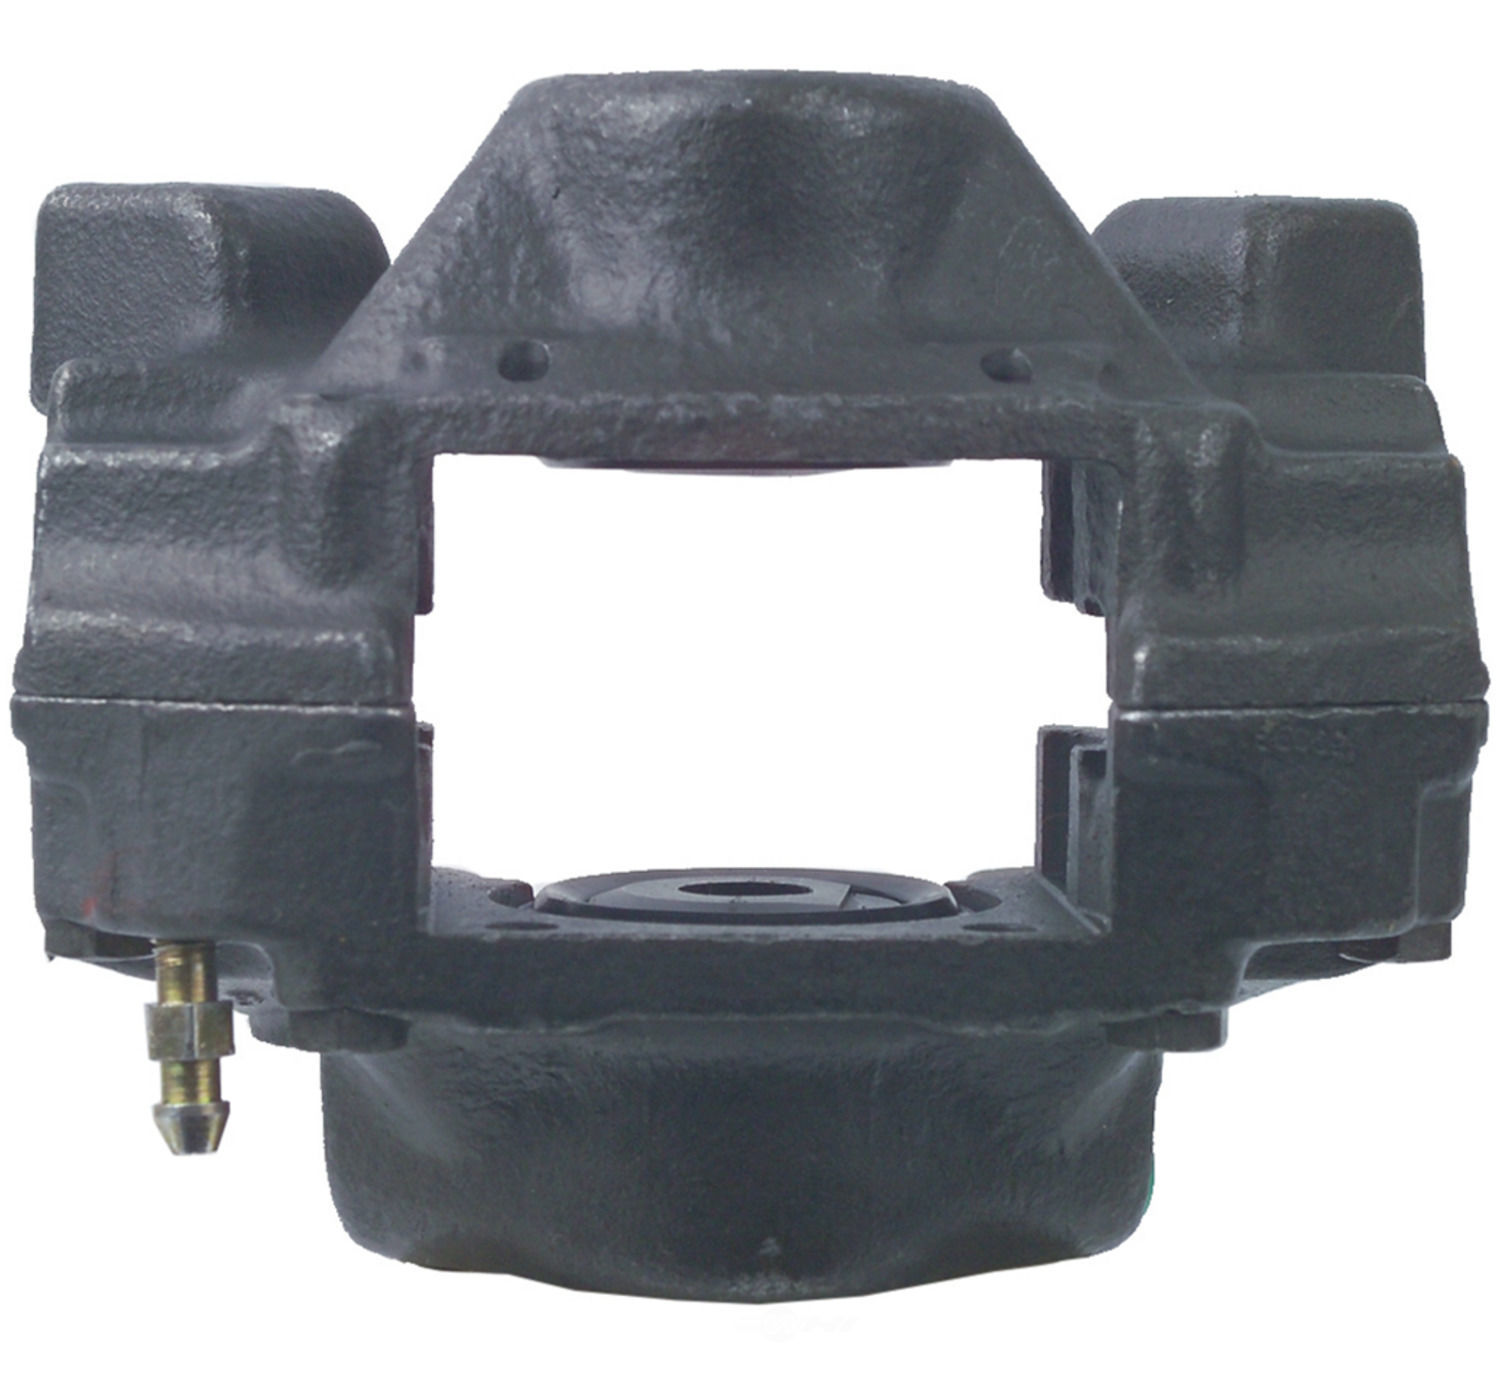 CARDONE/A-1 CARDONE - Reman Friction Choice Caliper (Rear Right) - A1C 18-4770